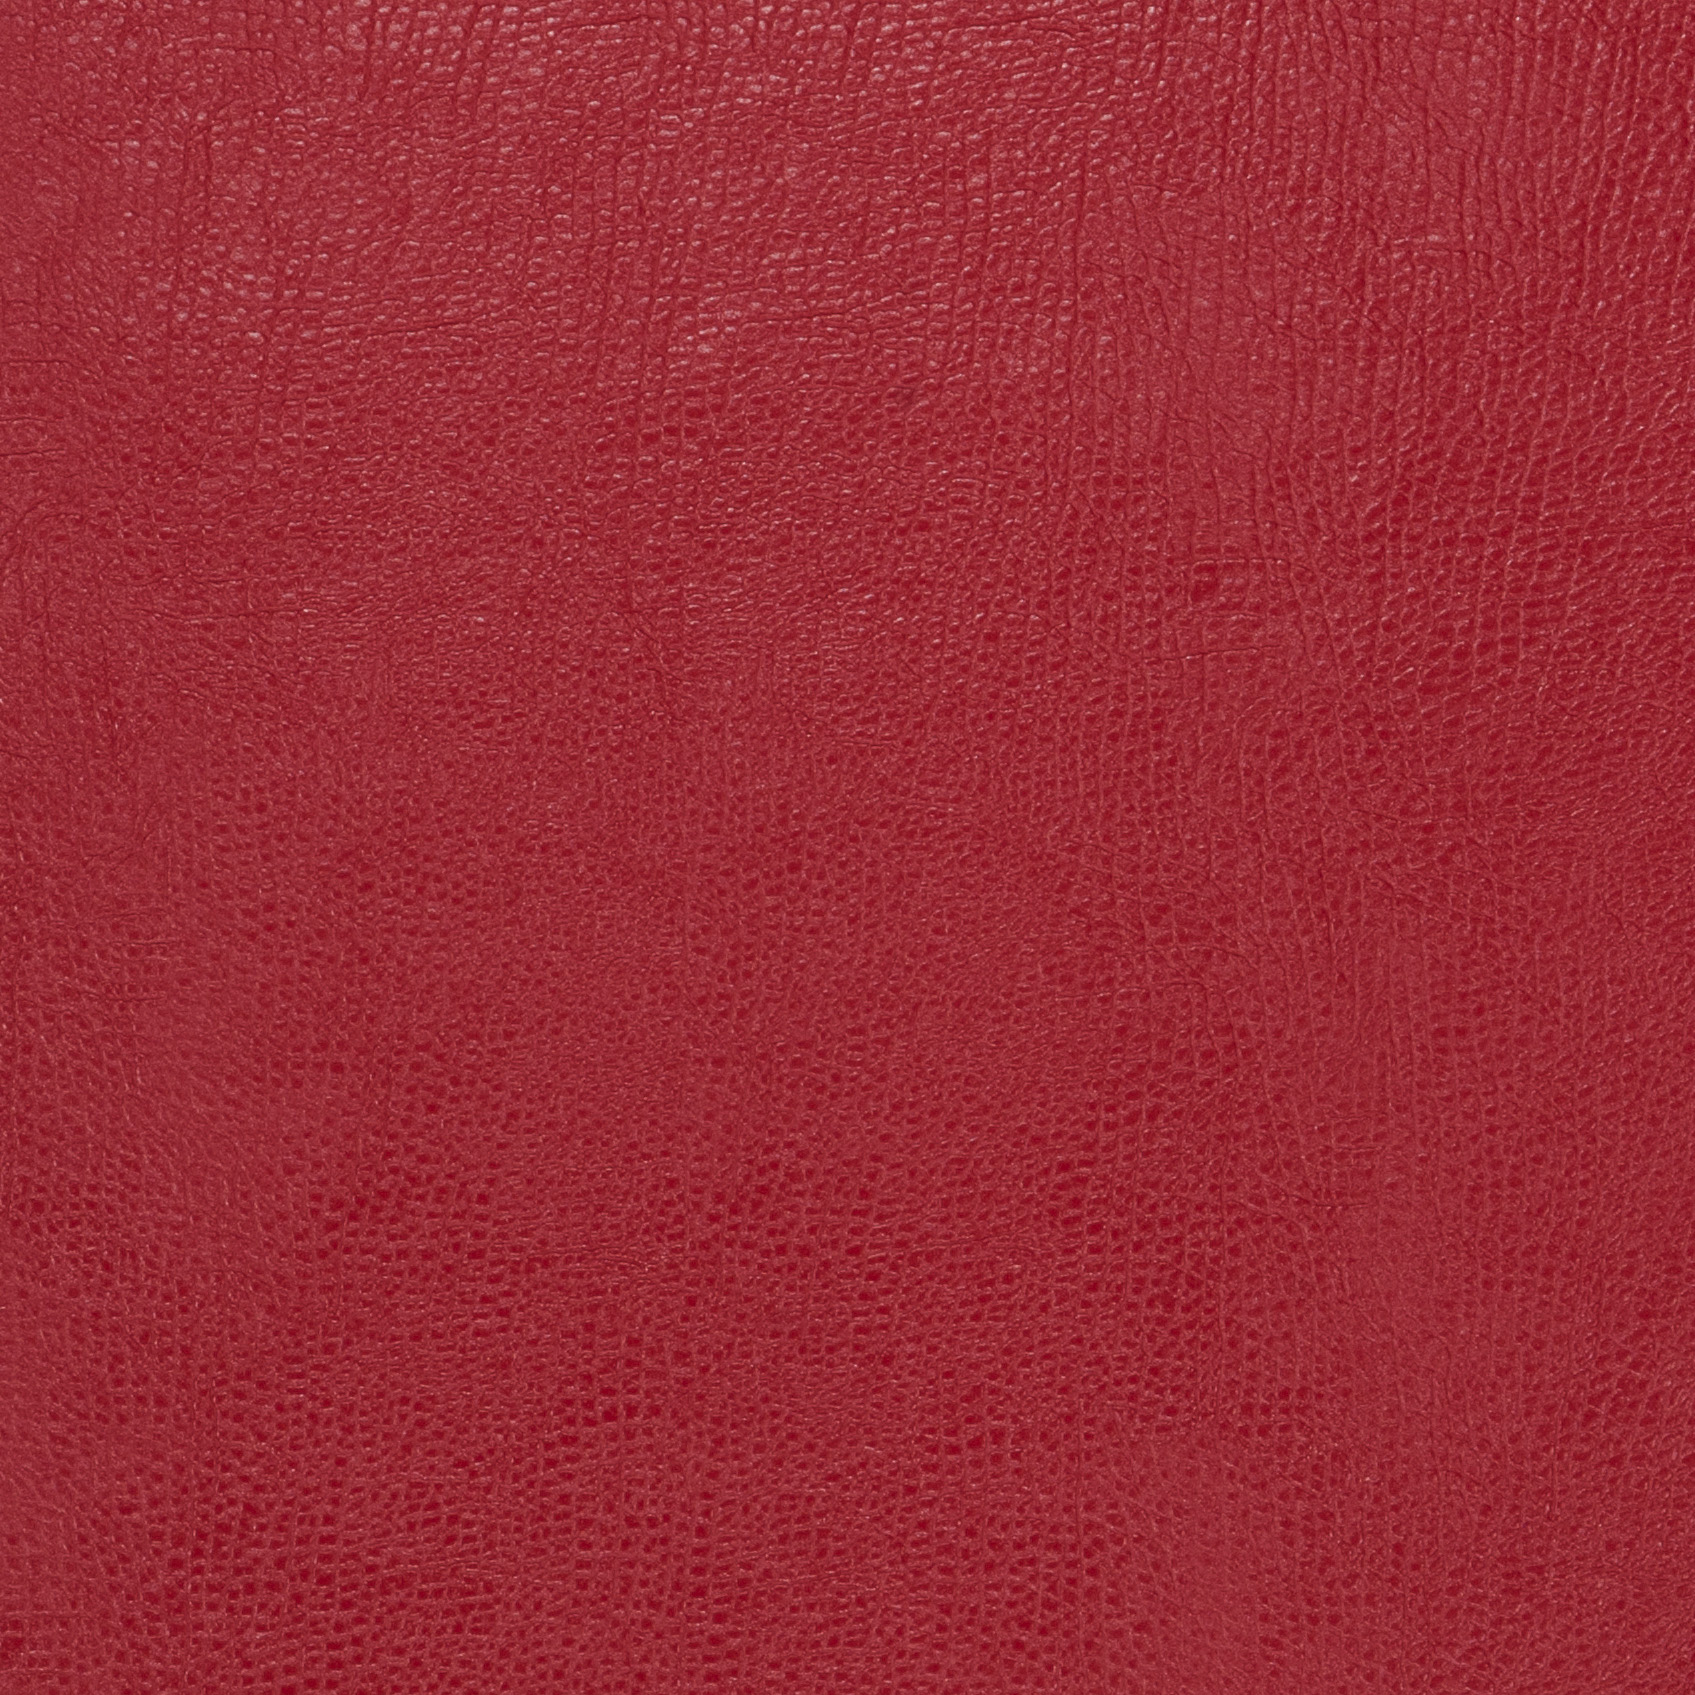 This 100% polyester faux leather fabric exceeds 200000 double rubs and has a backing of 96% polyvinylchloride/4% polyurethane. This heavyweight fabric can be used for upholstery projects picture frames accent pillows headboards ottomans and poufs.